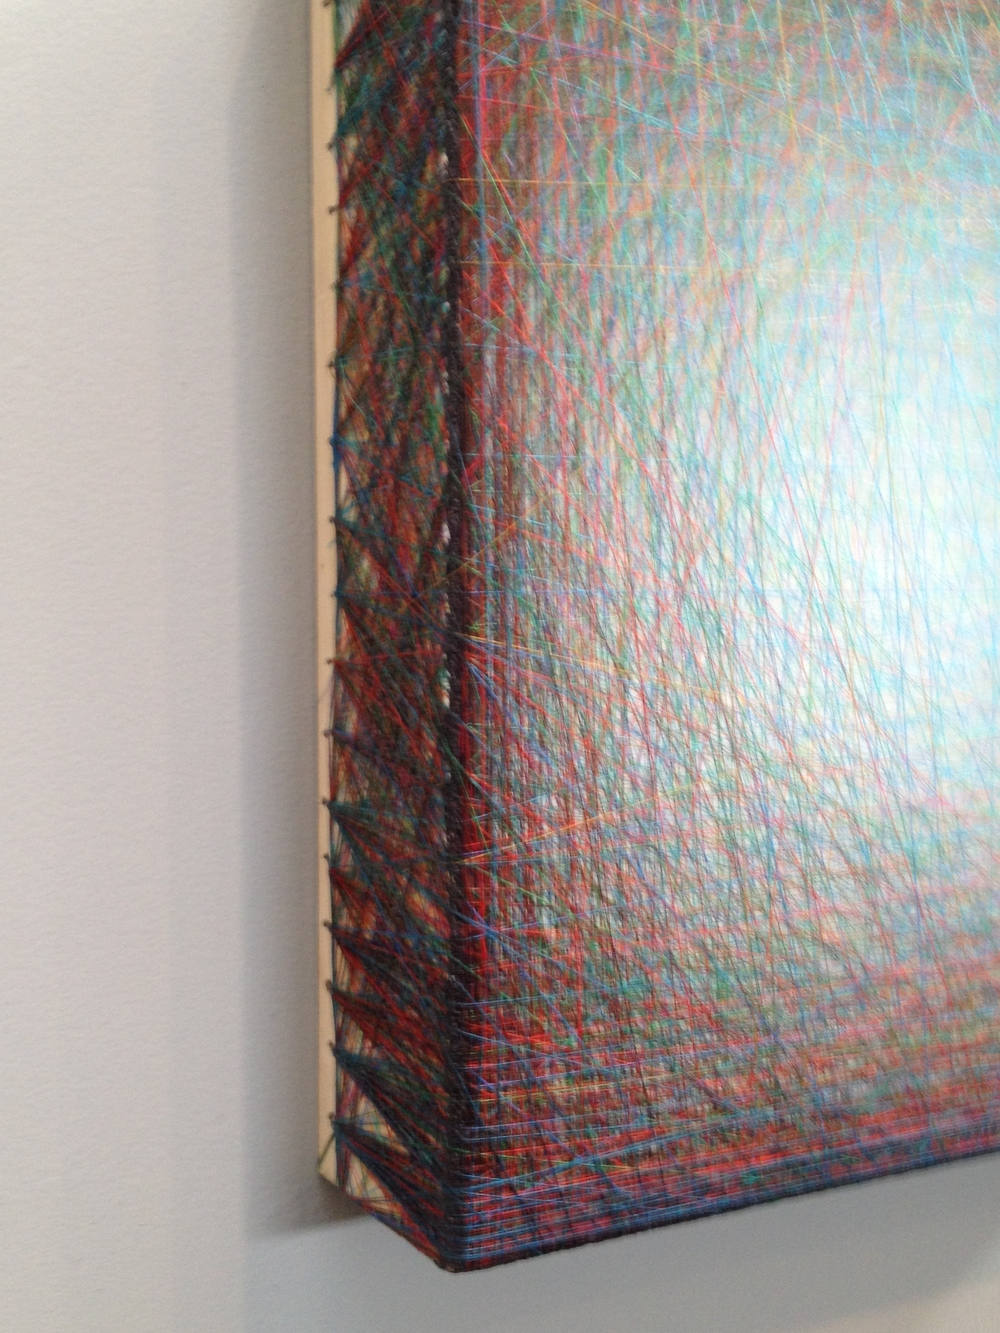 Emil Lukas'  Small Hallucination #1362  at Hosfelt Gallery. Thread over painted wood frame with nail.